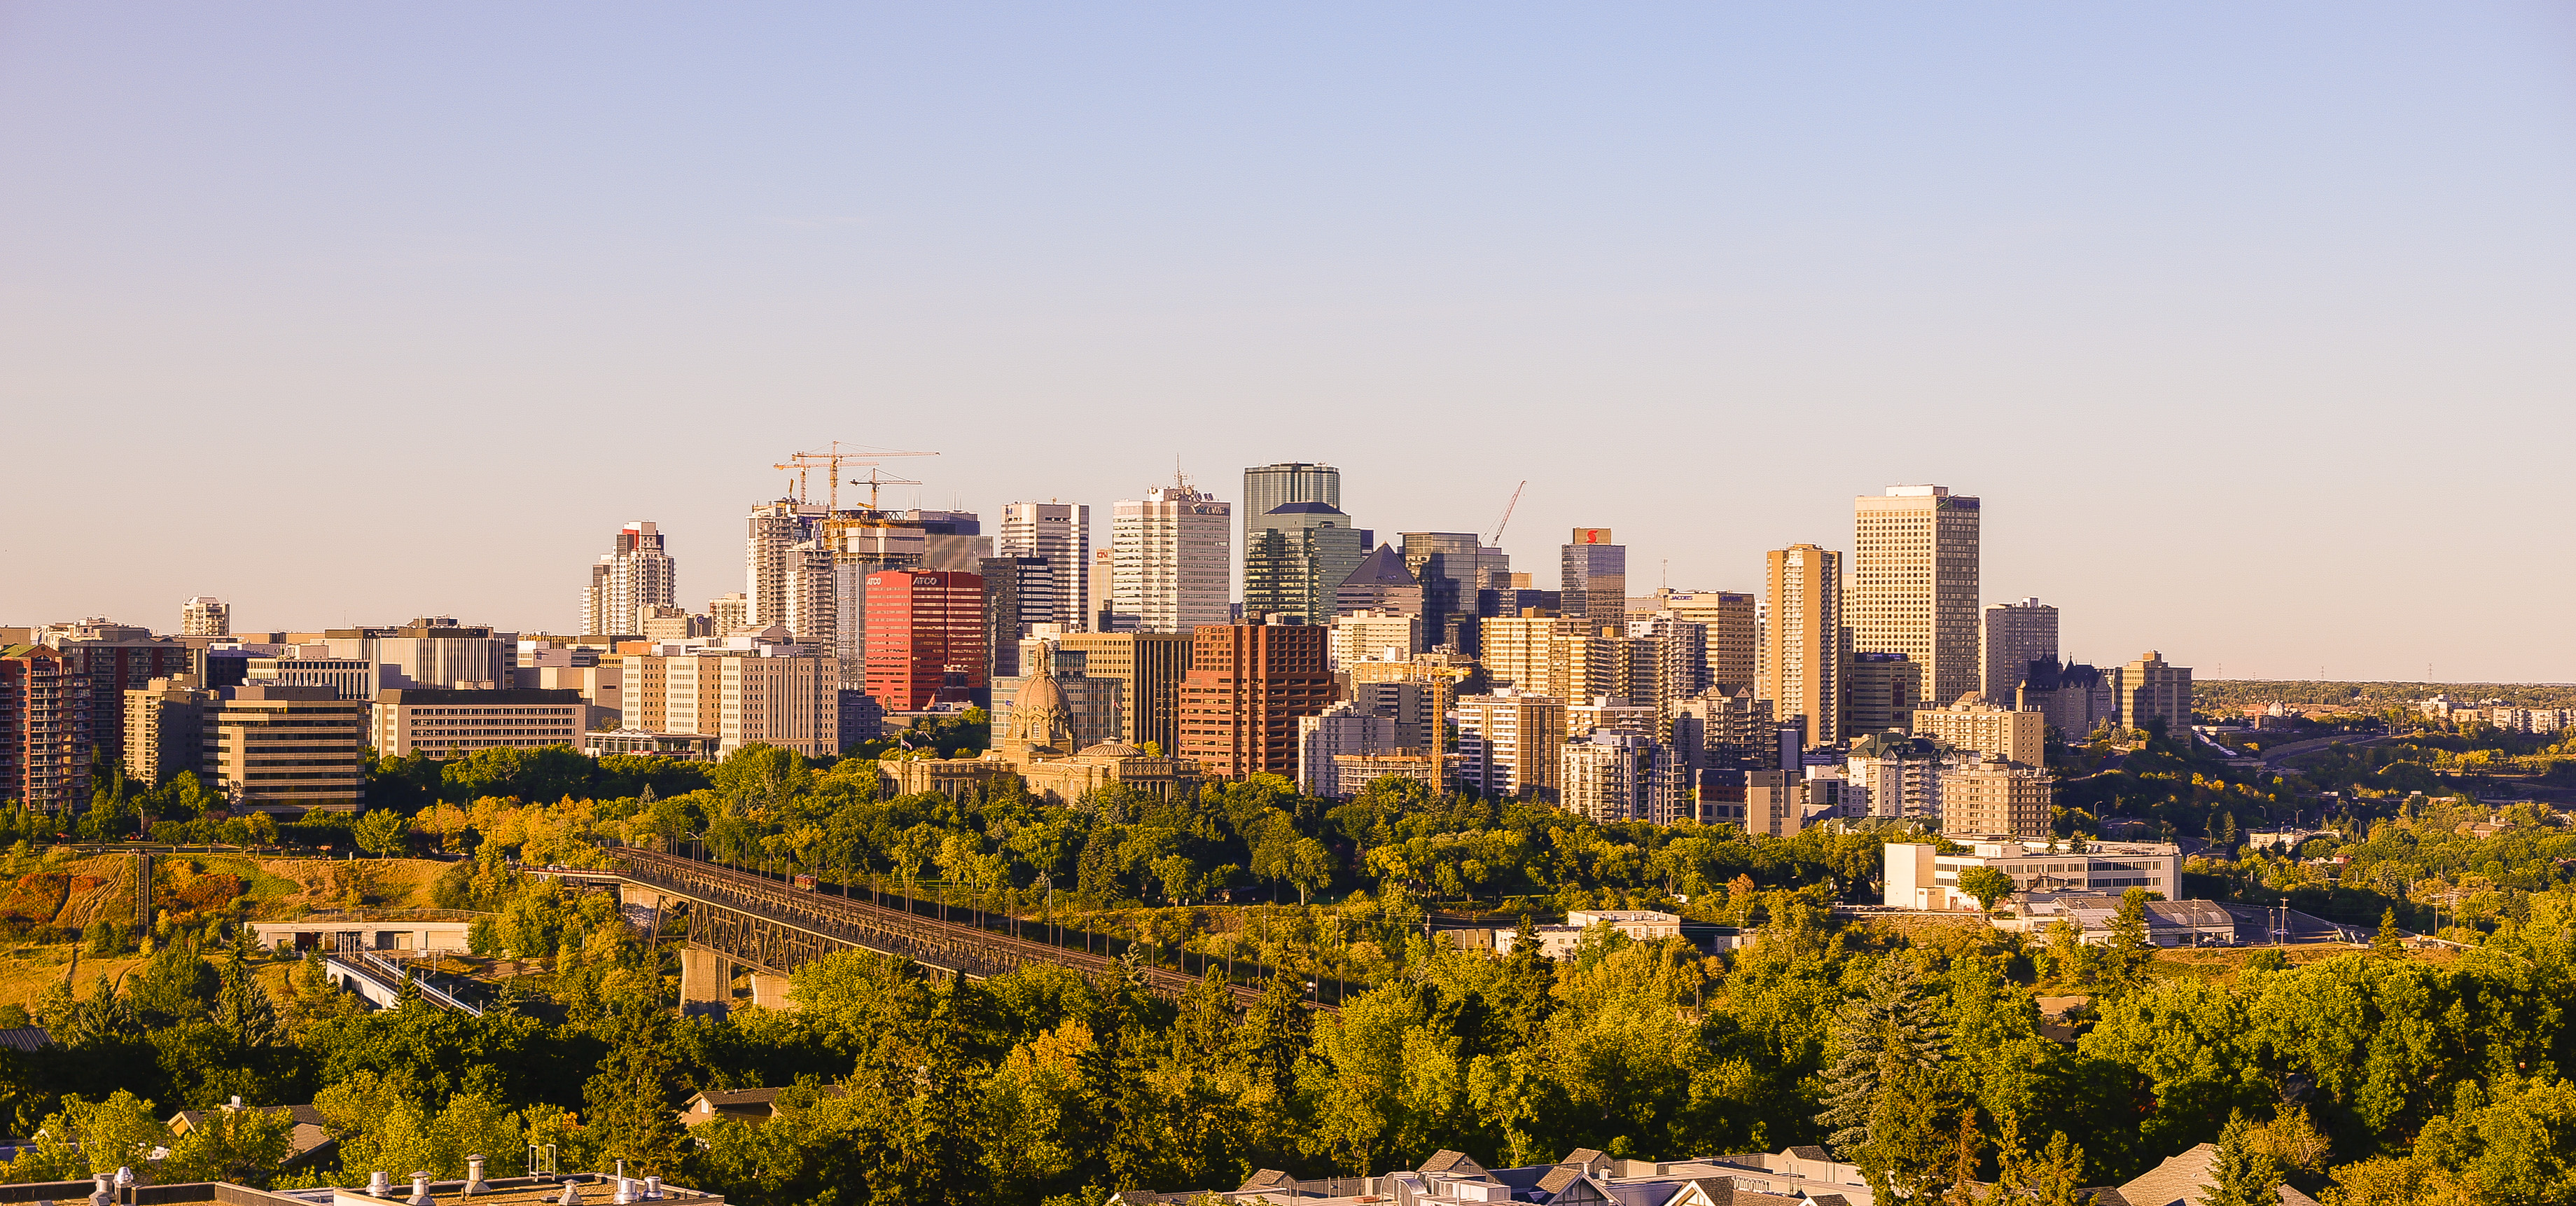 North America; Canada; Alberta; Edmonton; City Scape; City Skyline; Edmonton City Skyline; Edmonton City View; Urban; Nikon D800